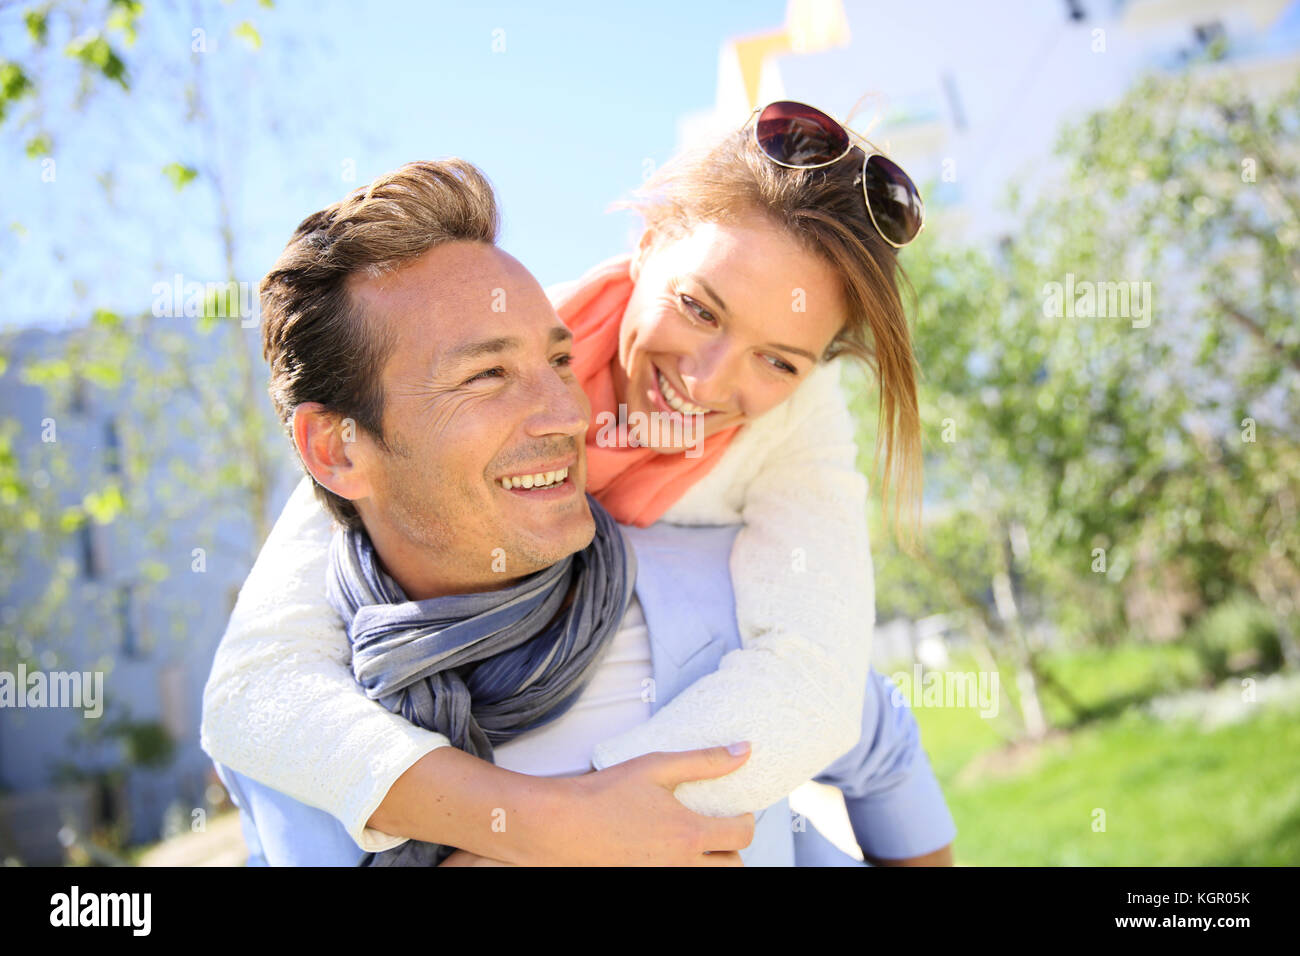 Man giving piggyback ride to woman in park Photo Stock